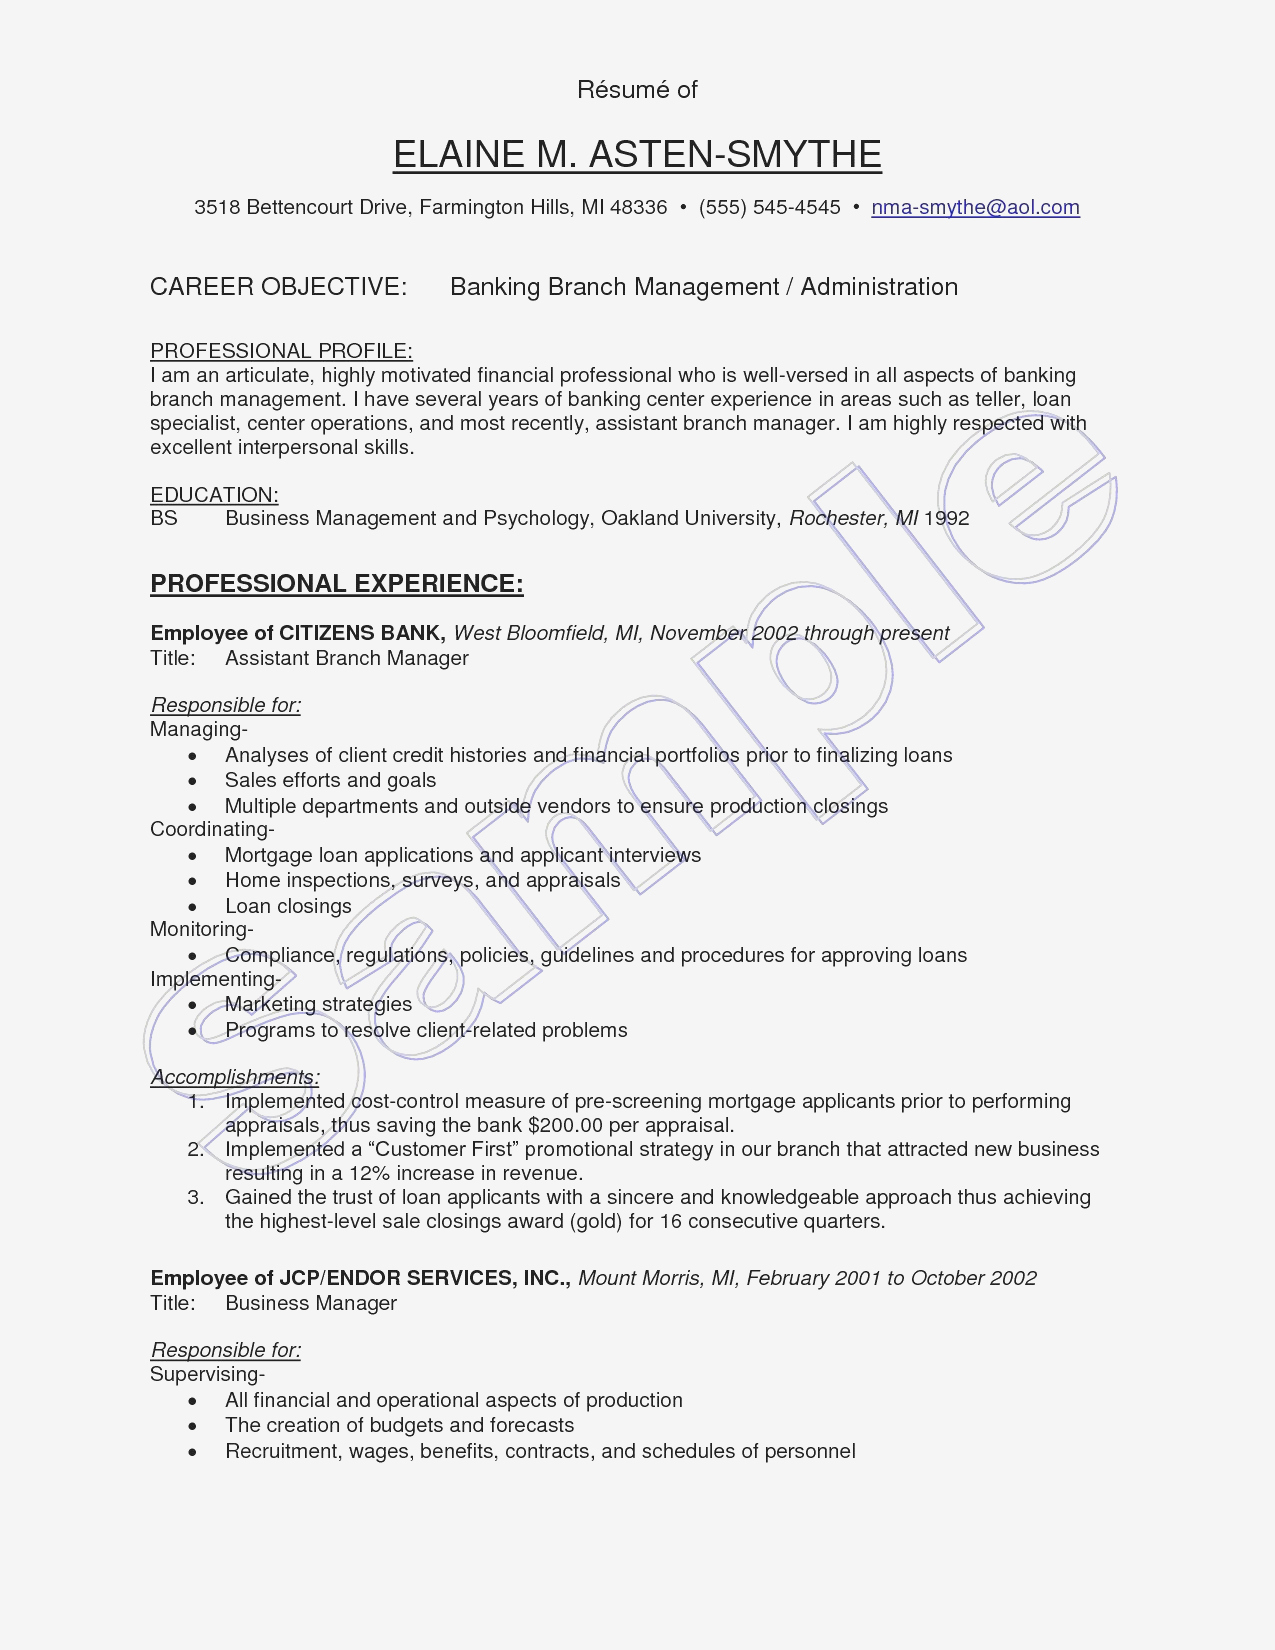 Restaurants Manager Resume - Sample Restaurant Resume